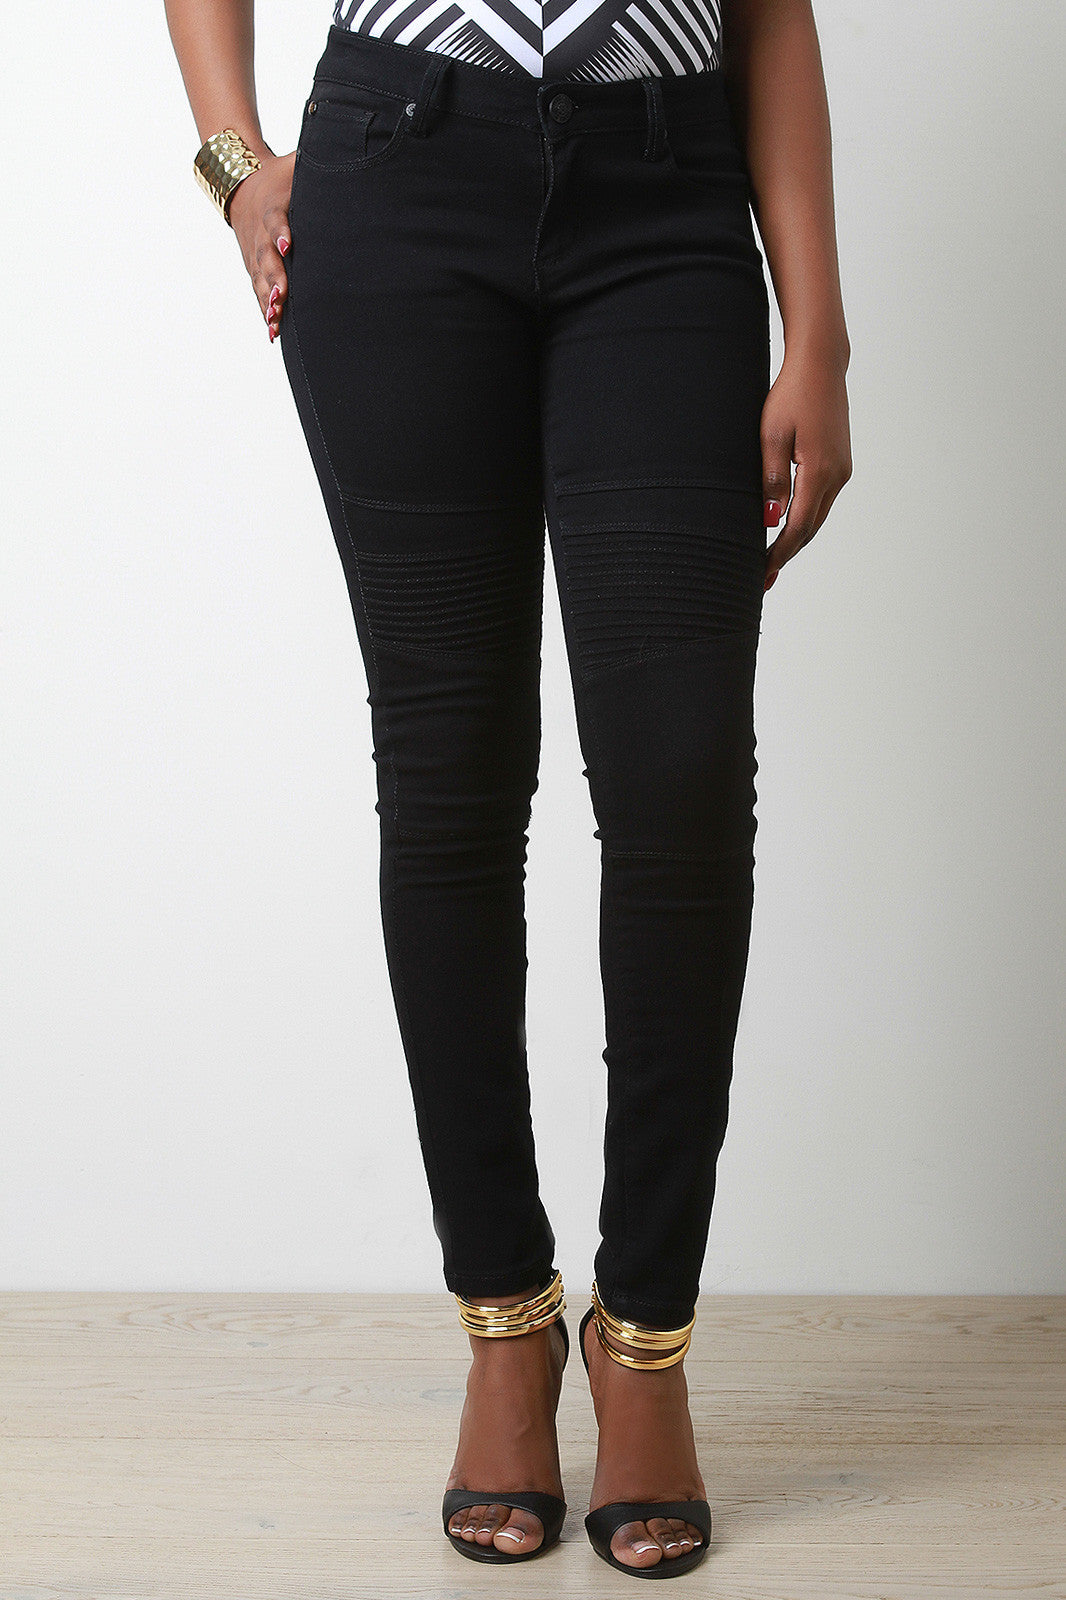 Edgy Moto Style Jeans - Thick 'N' Curvy Shop - 2